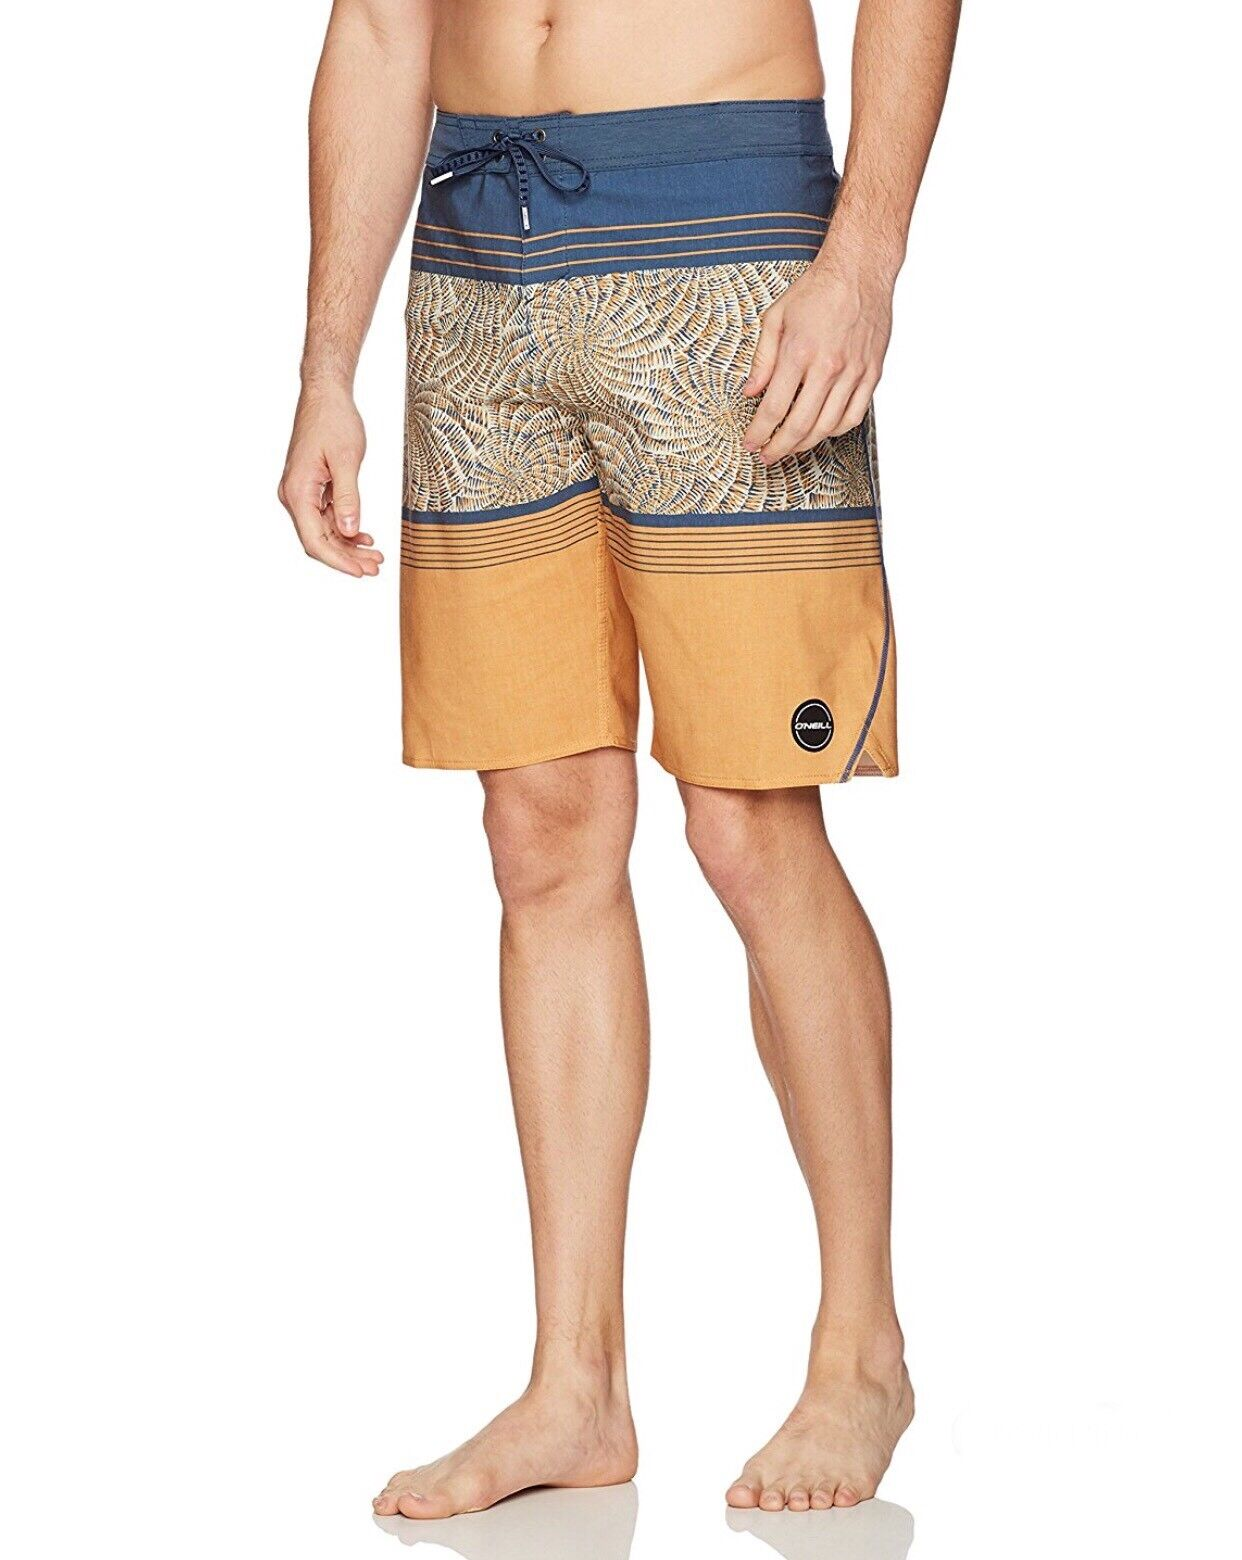 NEW Oneill HyperFreak Nautilus S-Seam Trunks Bordshort Navy gold Mns Size 32